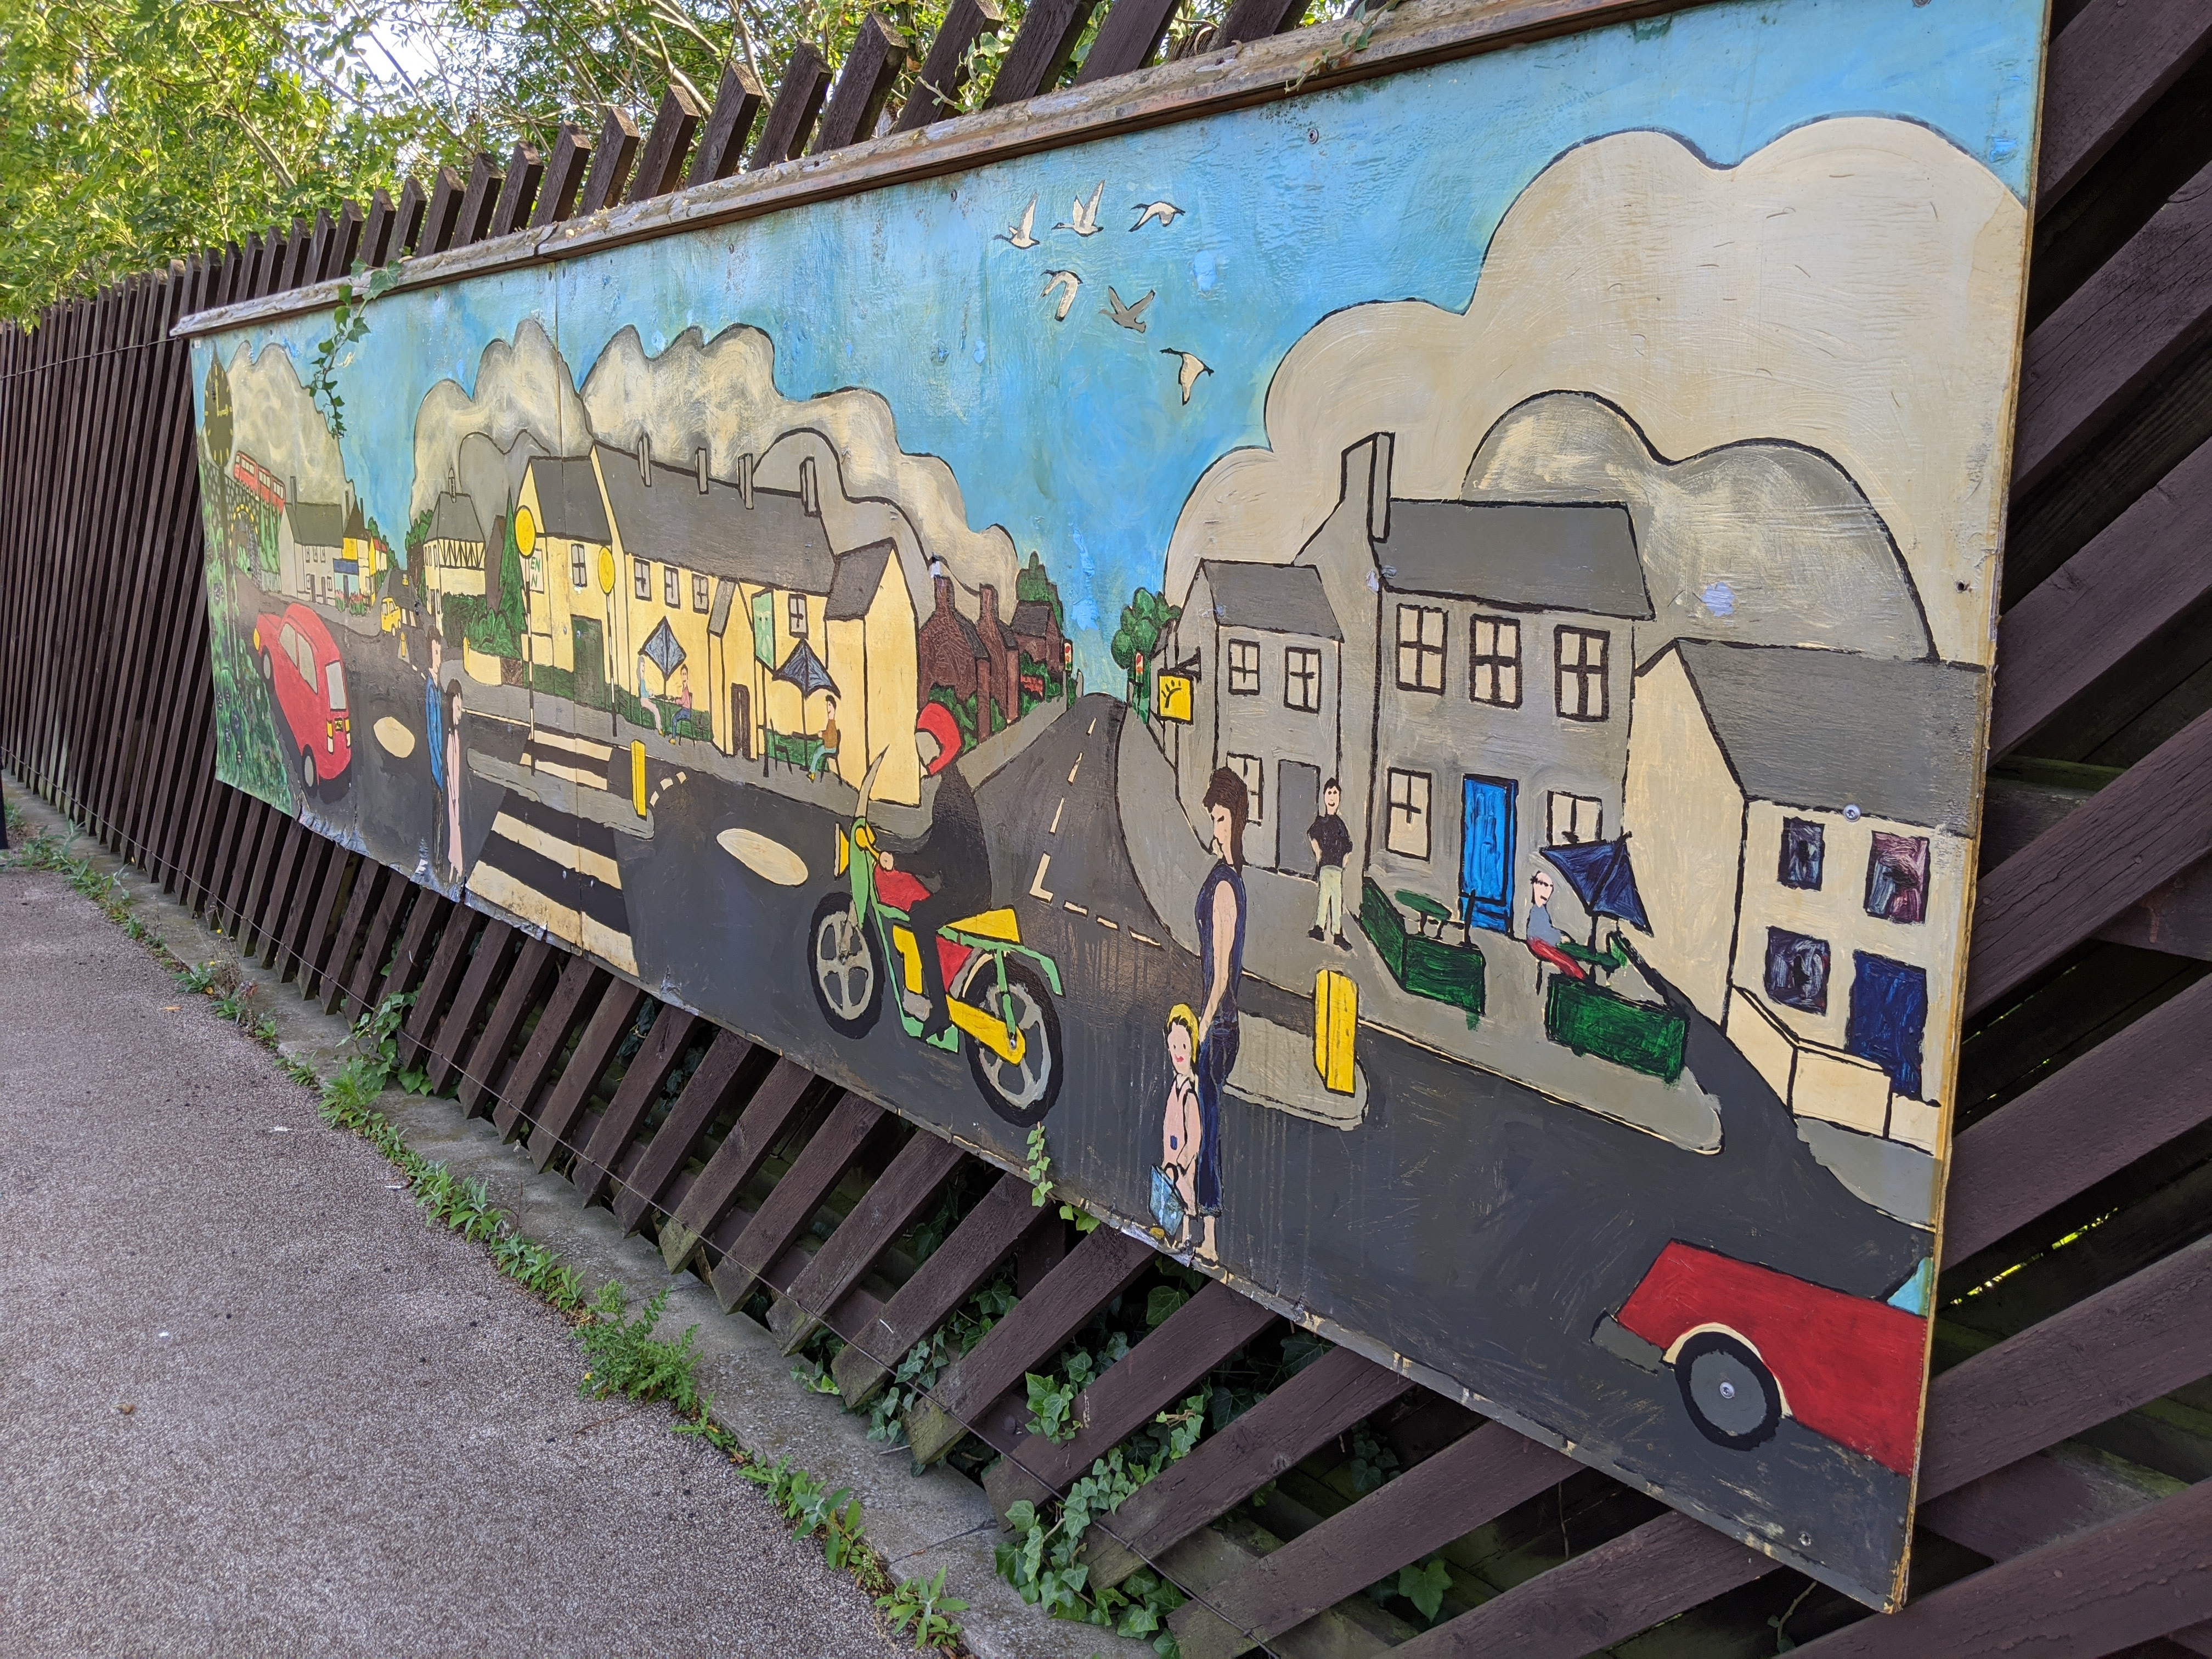 Another mural of Willington.